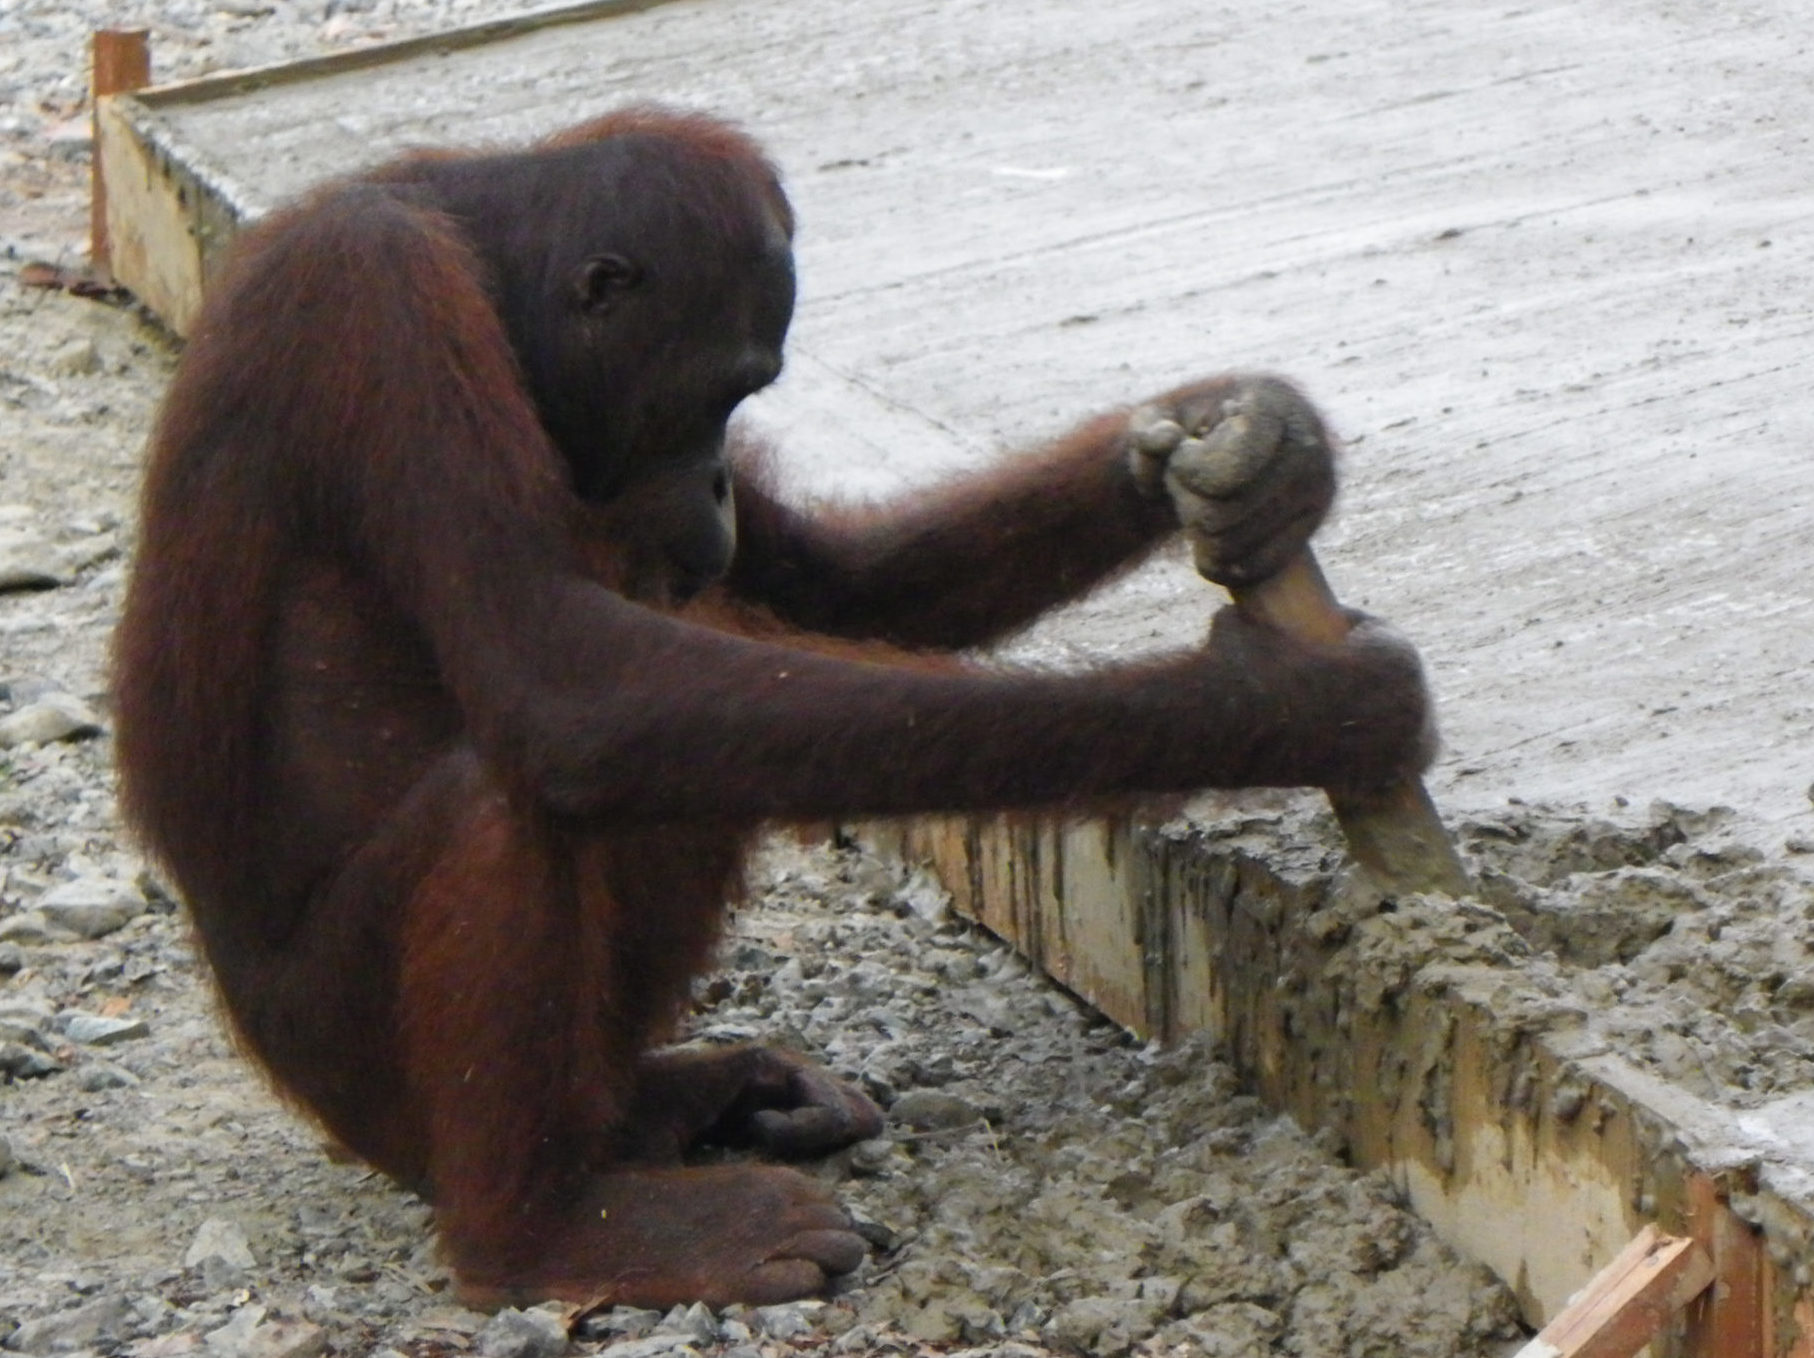 Orangutan playing in the concrete foundations of a building demonstrates the detrimental effect that building can have on the natural world